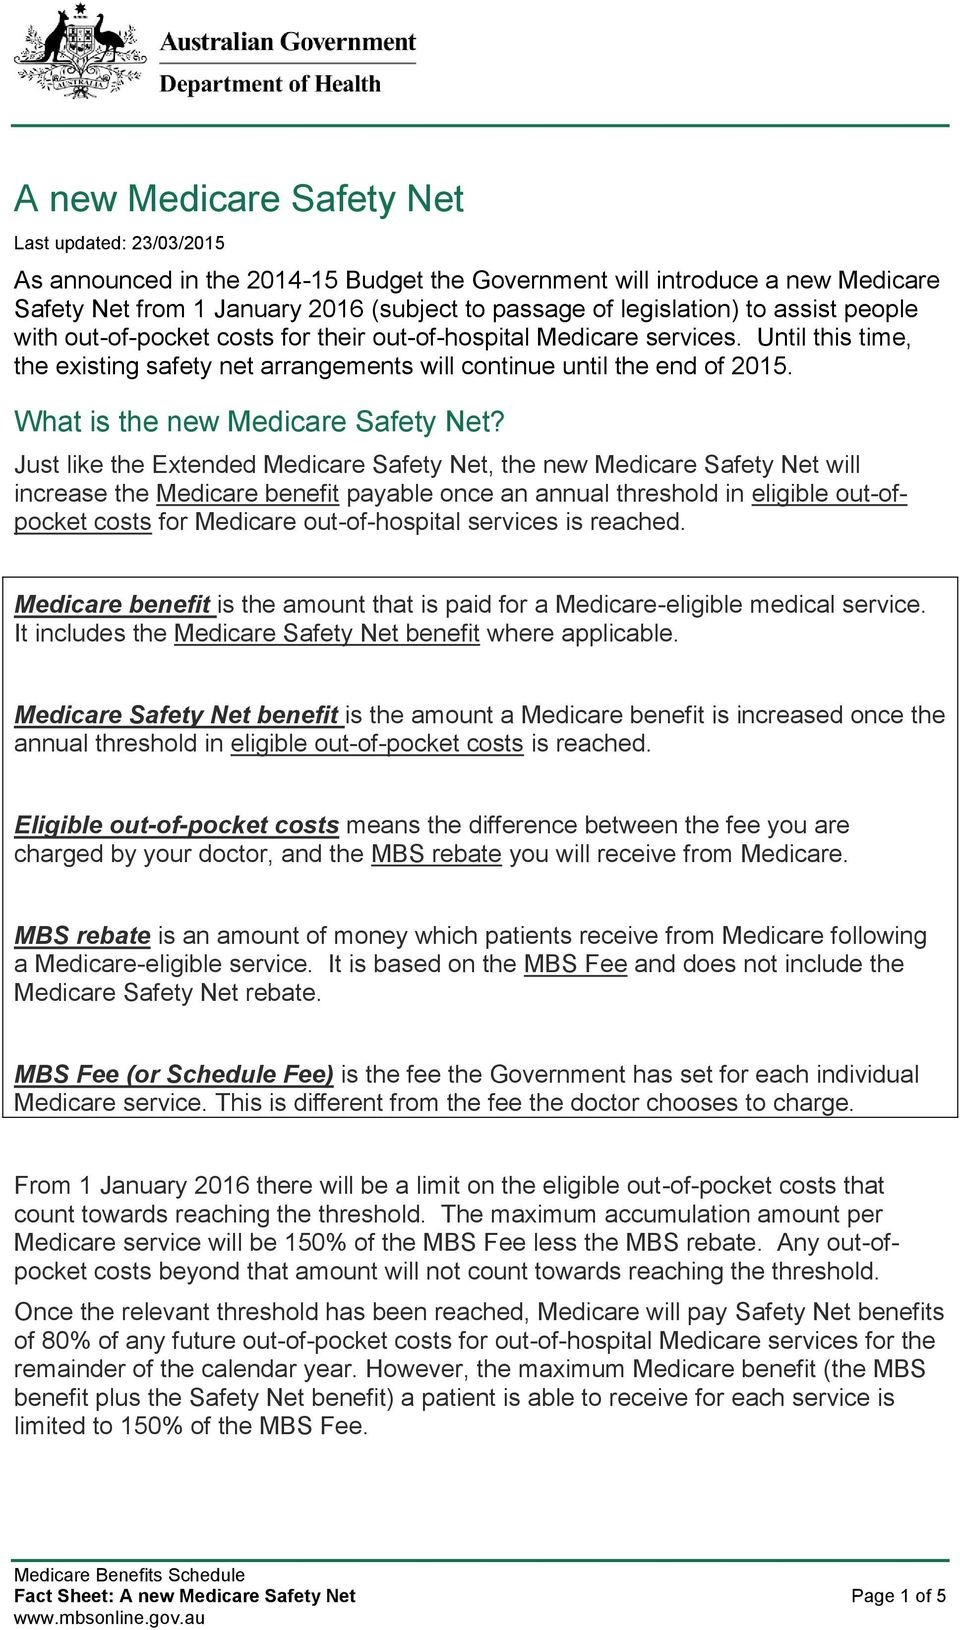 What is the new Medicare Safety Net?